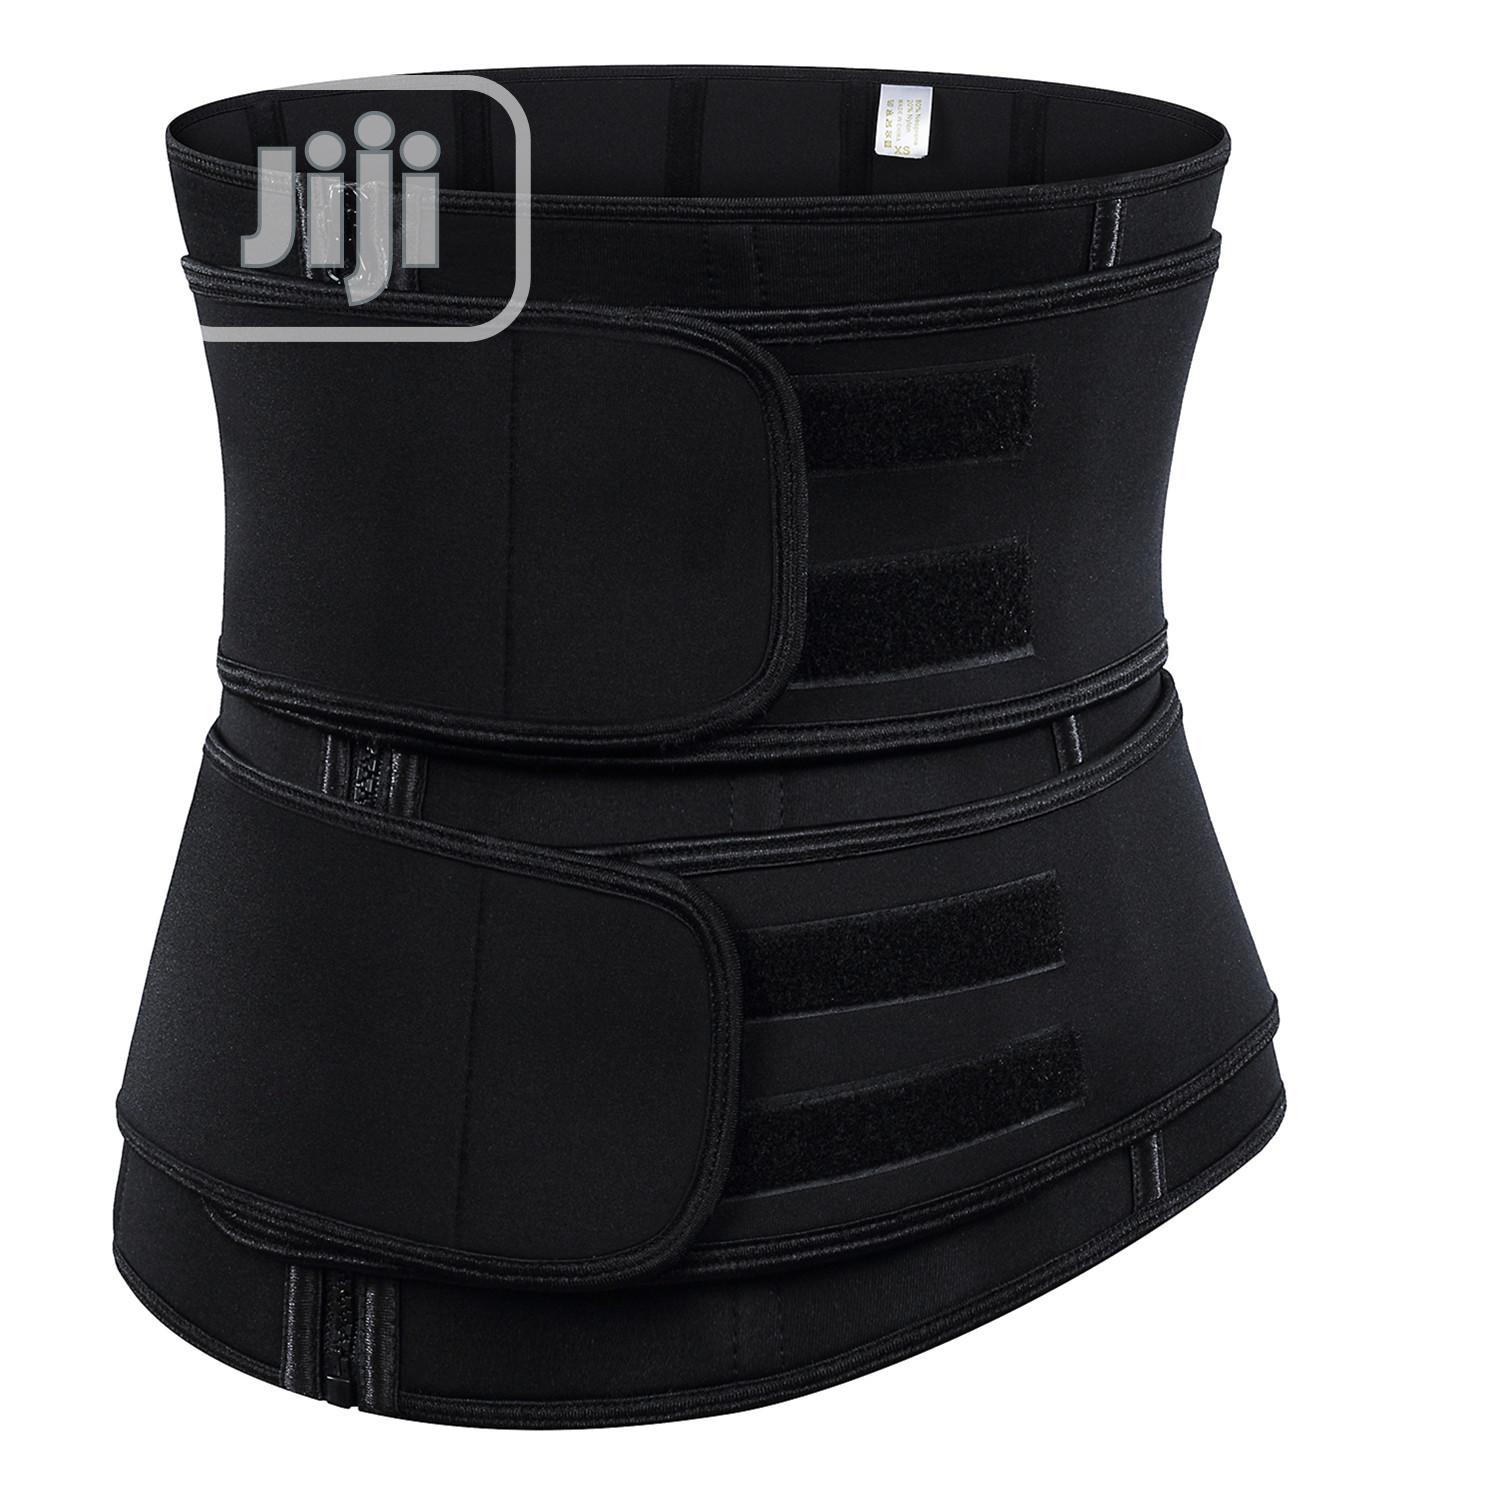 100% Latex Waist Trimmer   Tools & Accessories for sale in Kosofe, Lagos State, Nigeria